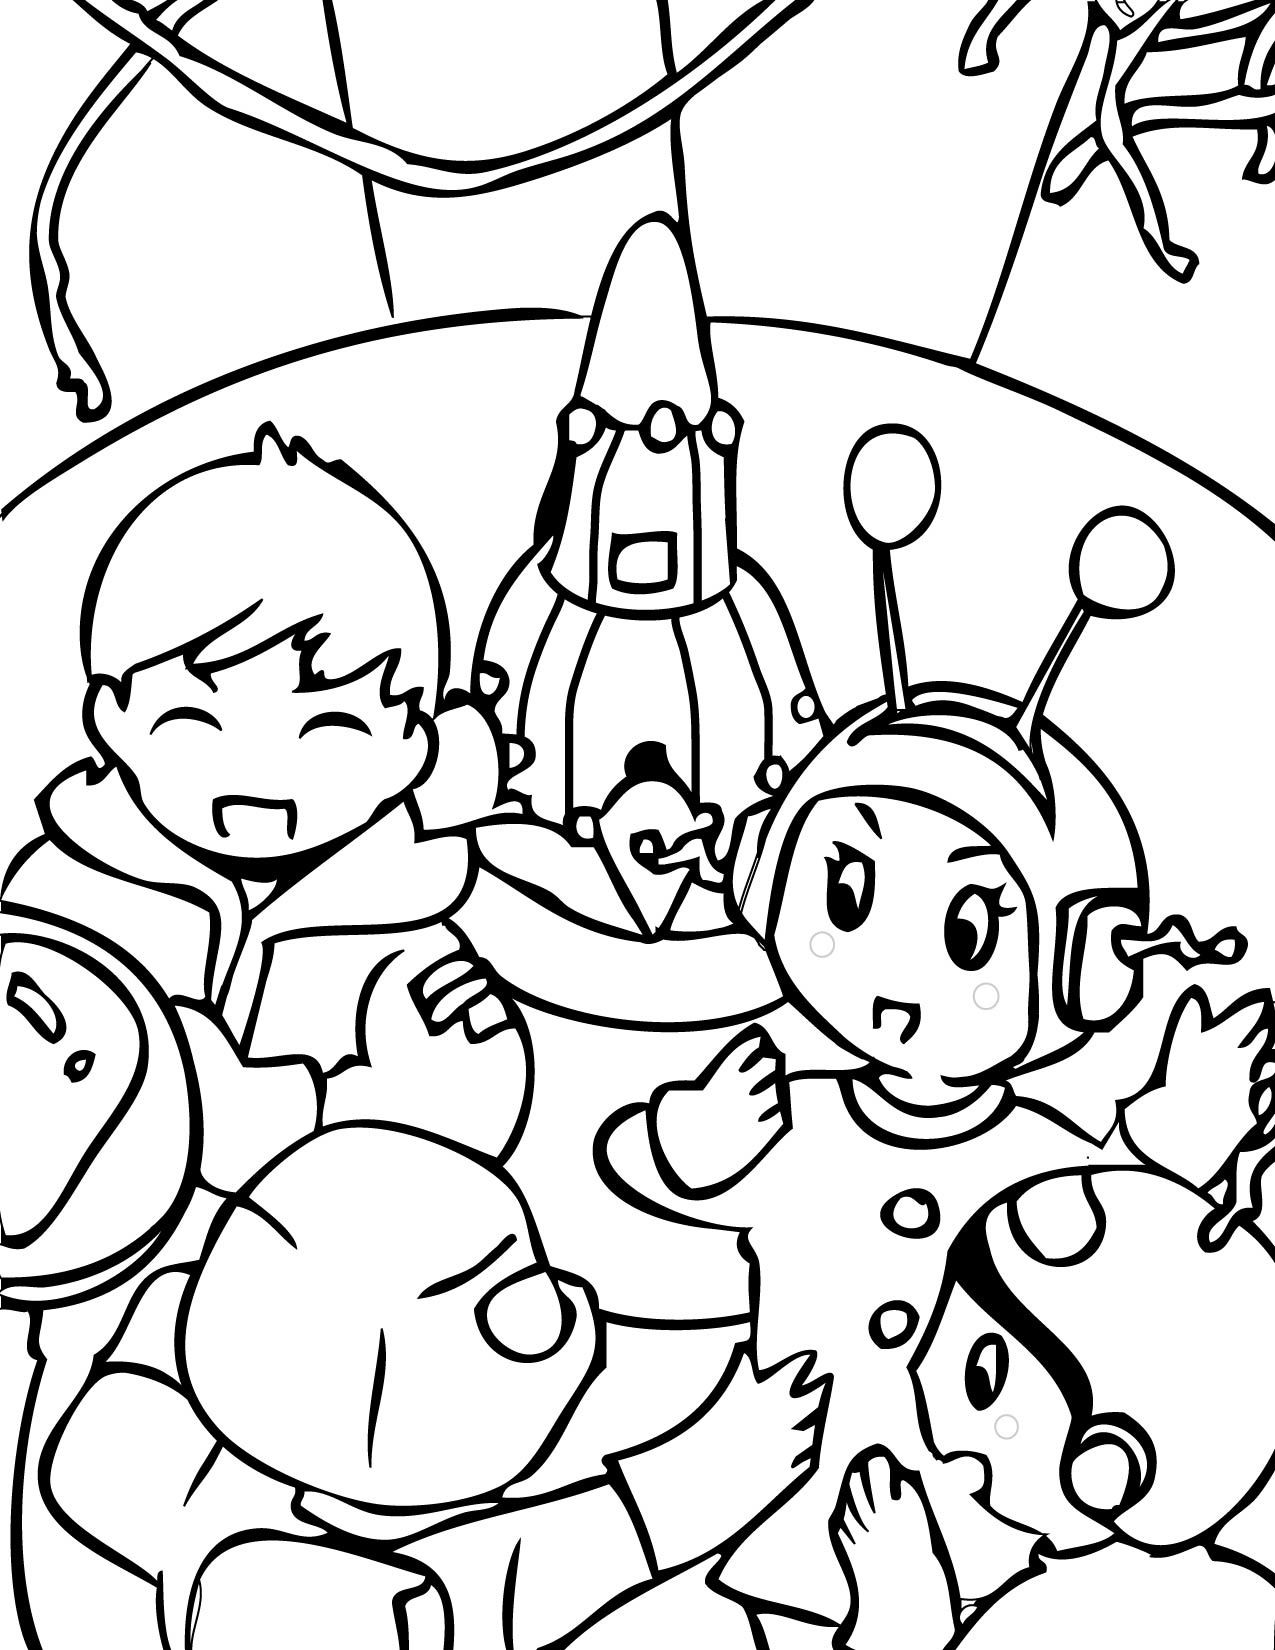 Alien In Spaceship Alien Coloring Page Coloring Page Space ...